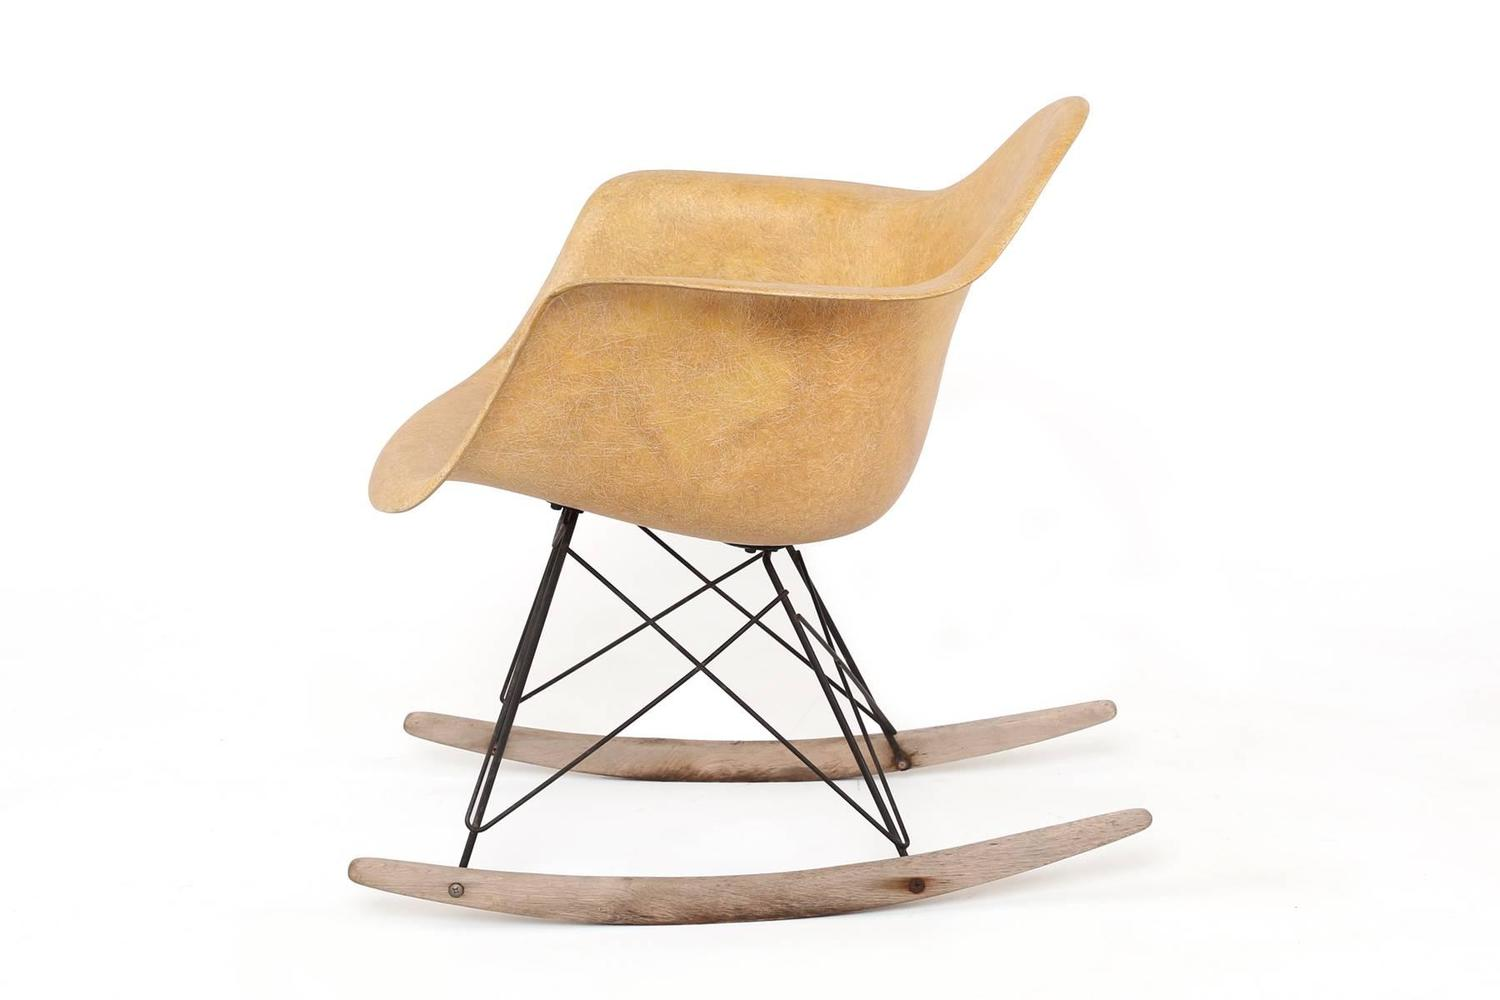 zenith rocking chair by charles and ray eames at 1stdibs. Black Bedroom Furniture Sets. Home Design Ideas